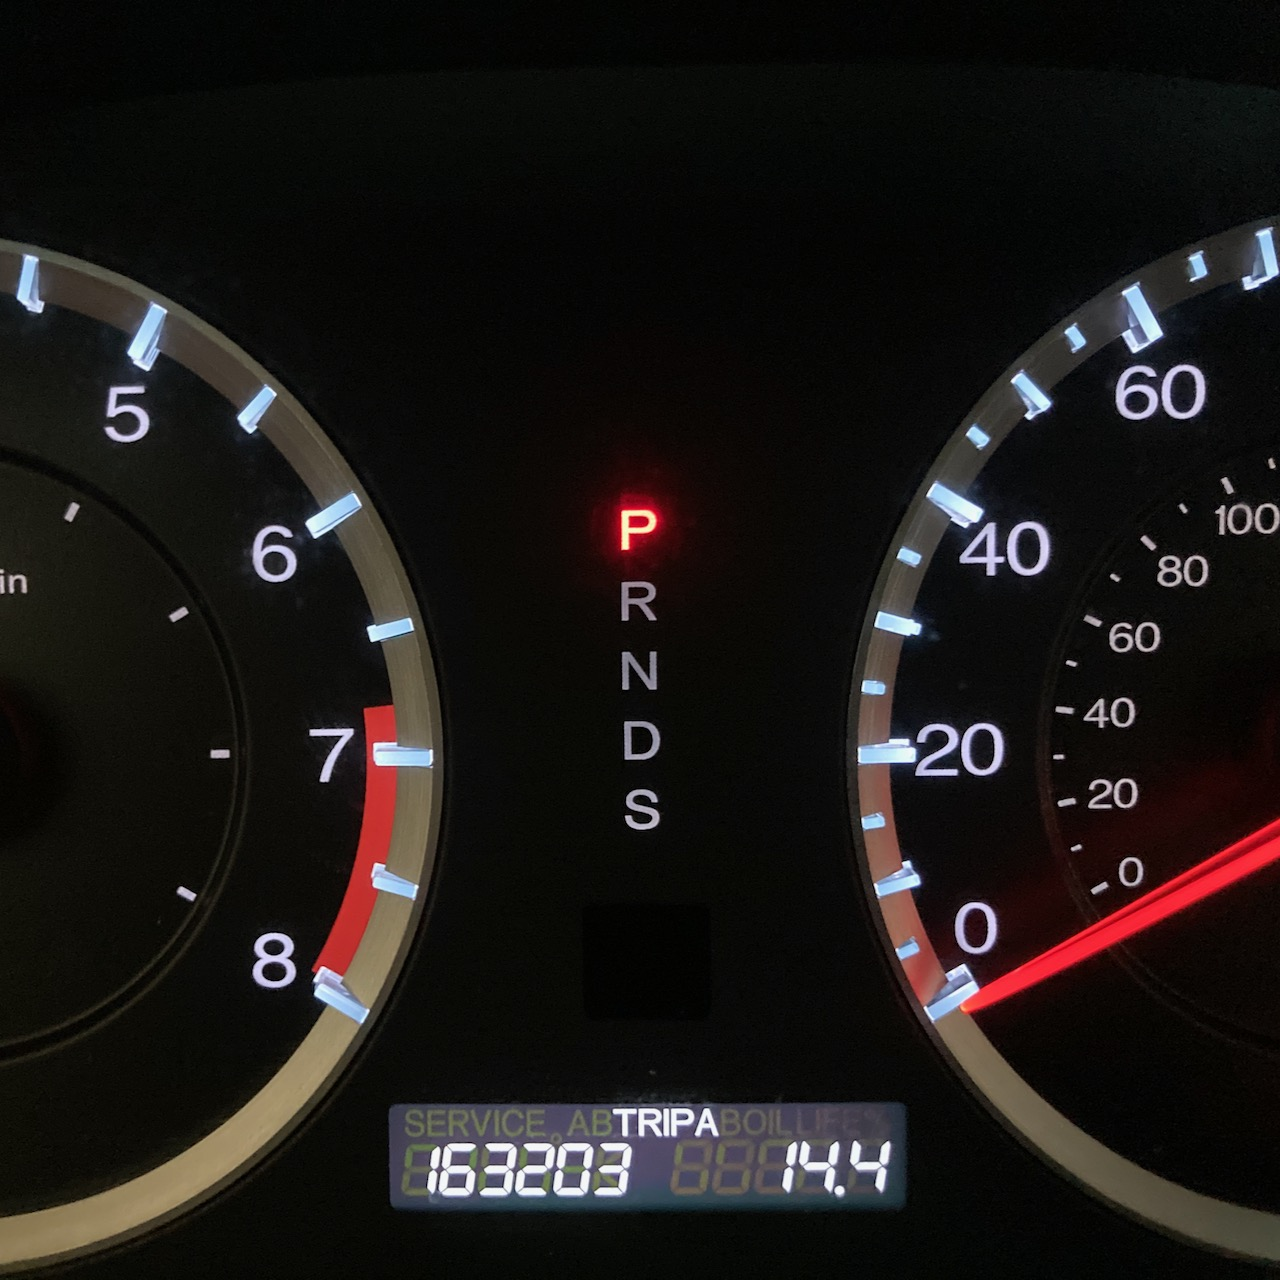 Car odometer reading 163203 TRIP A 14.4